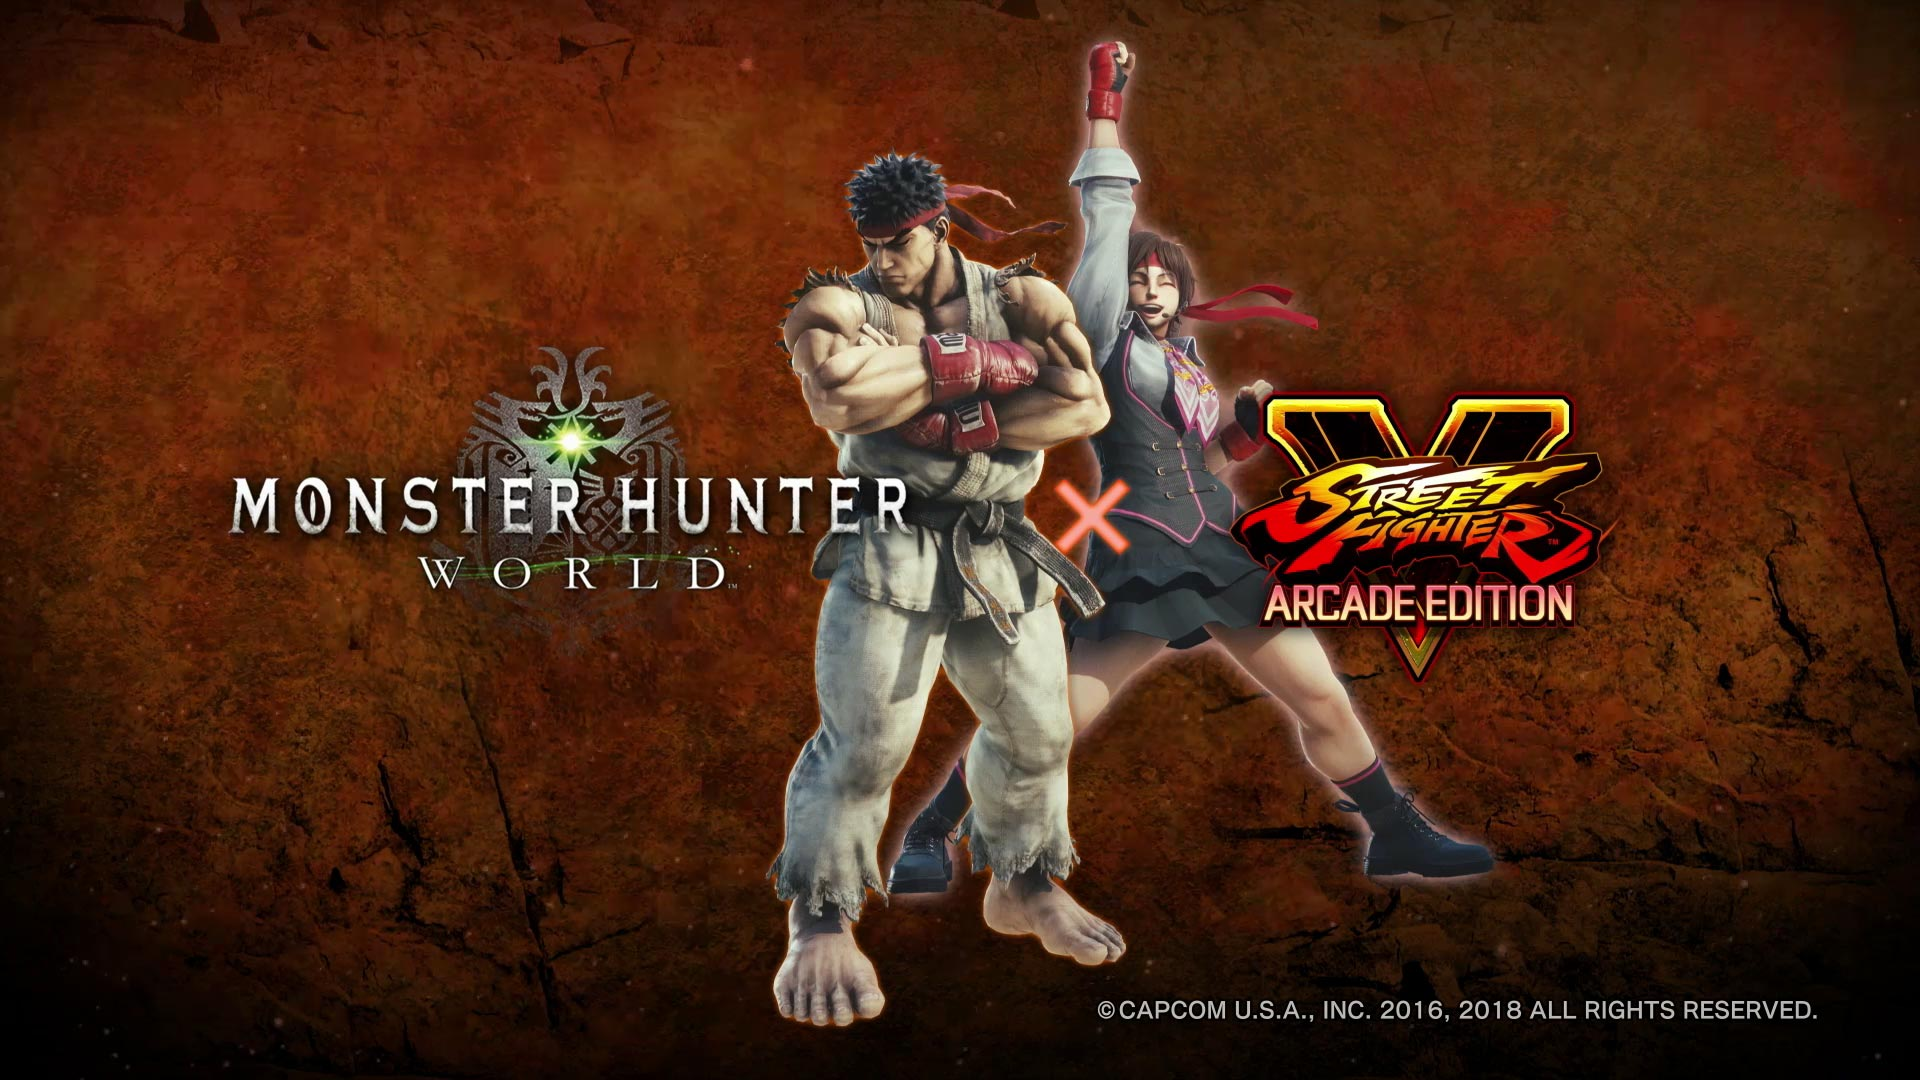 Street Fighter's Ryu and Sakura in Monster Hunter World 1 out of 5 image gallery